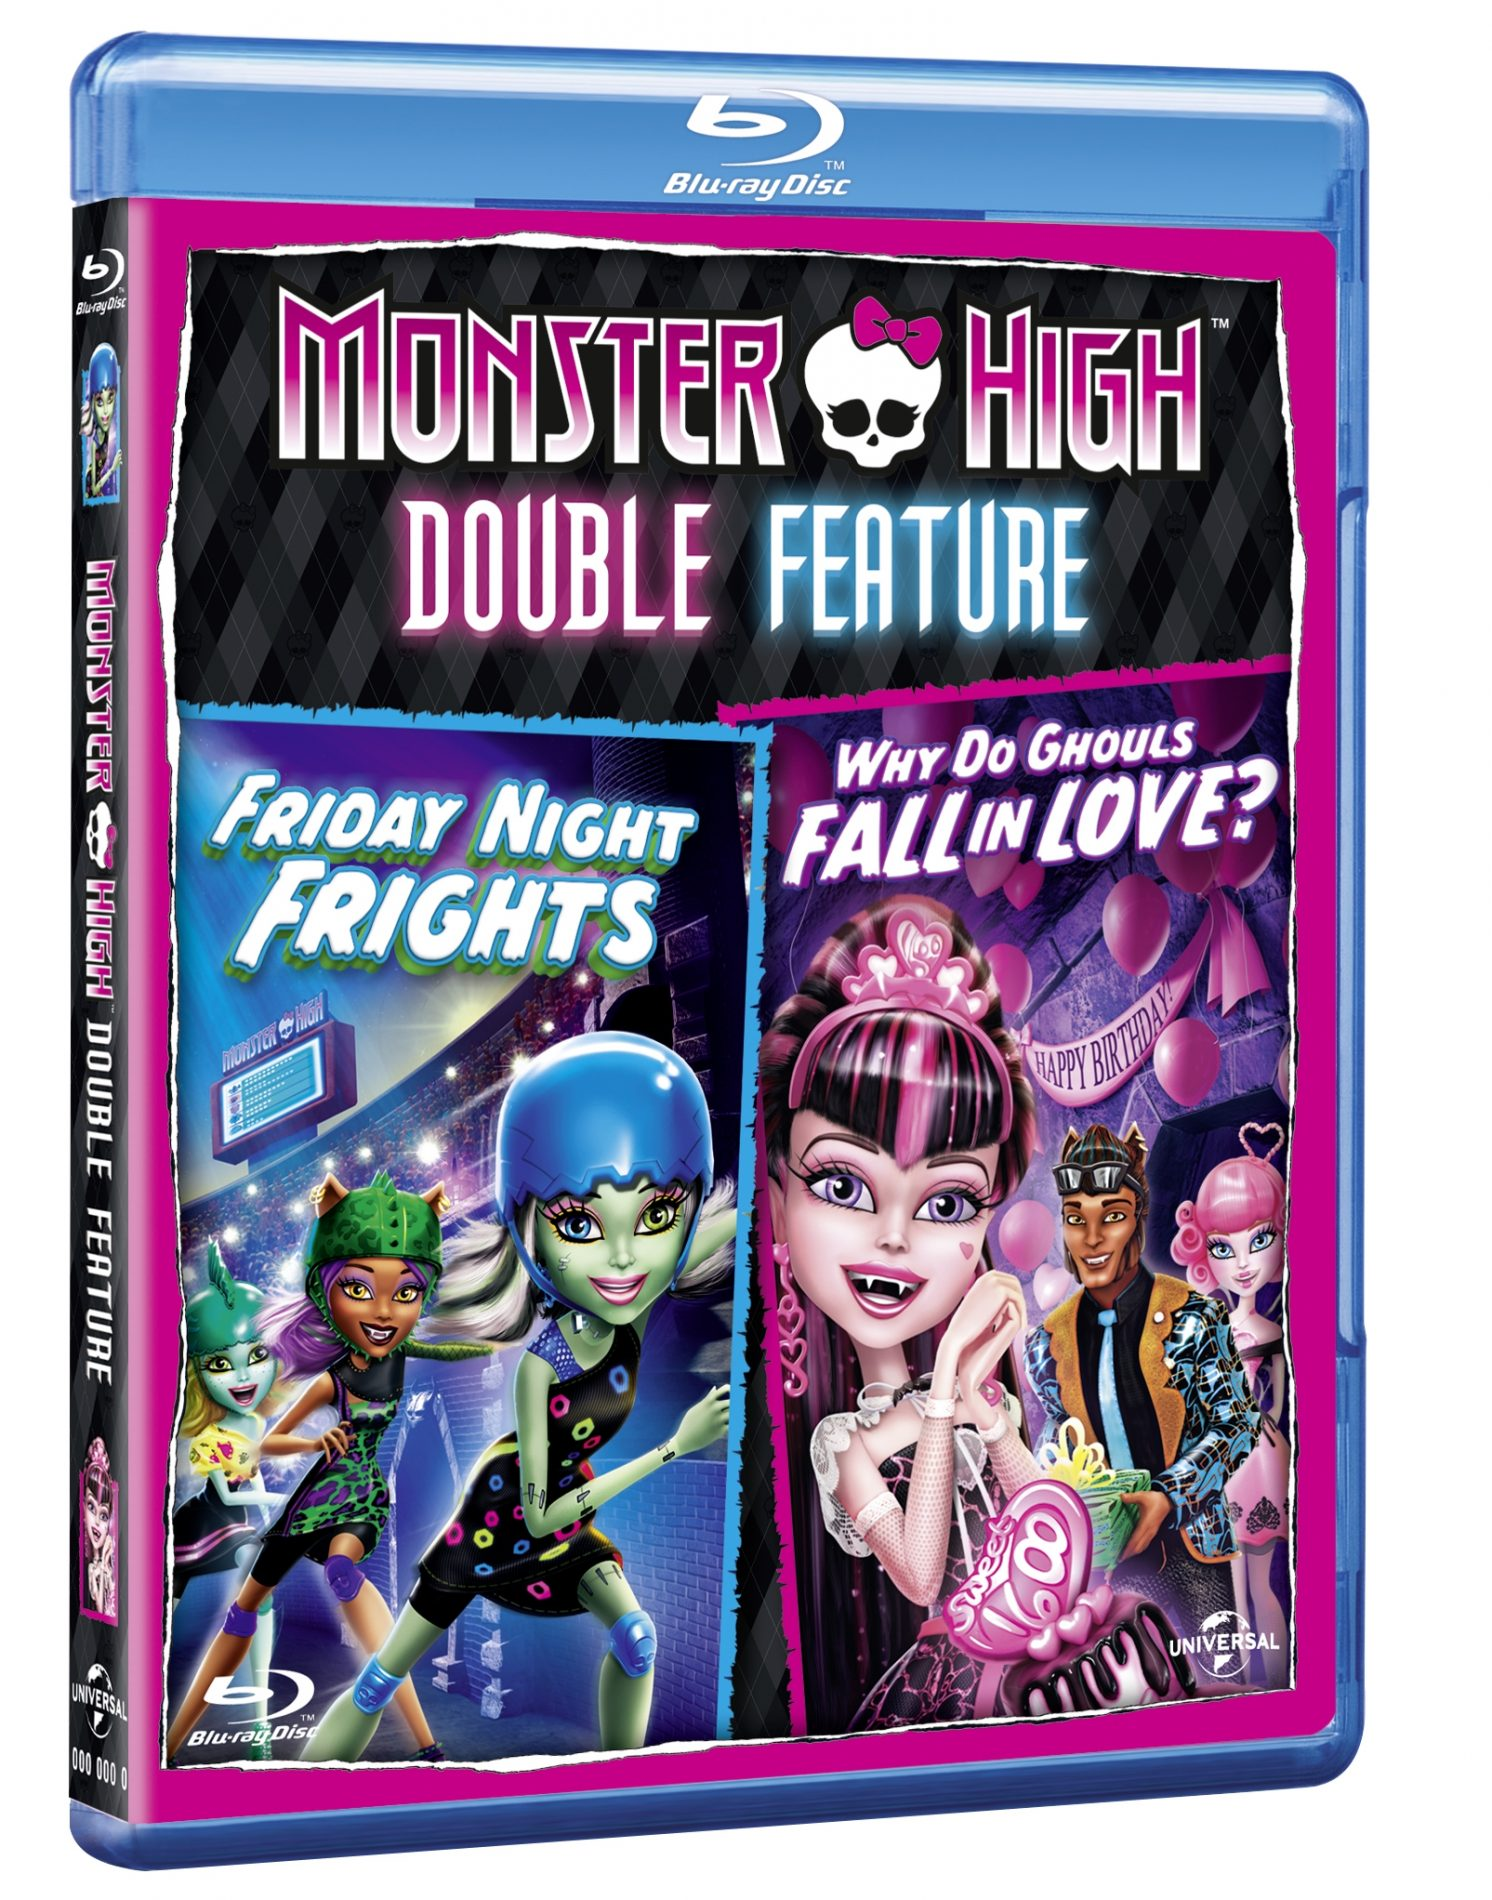 Win 1 of 3 copies of new DVD &#8216;Monster High: Why Do Ghouls Fall in Love and Monster High: Friday Night Frights&#8217;